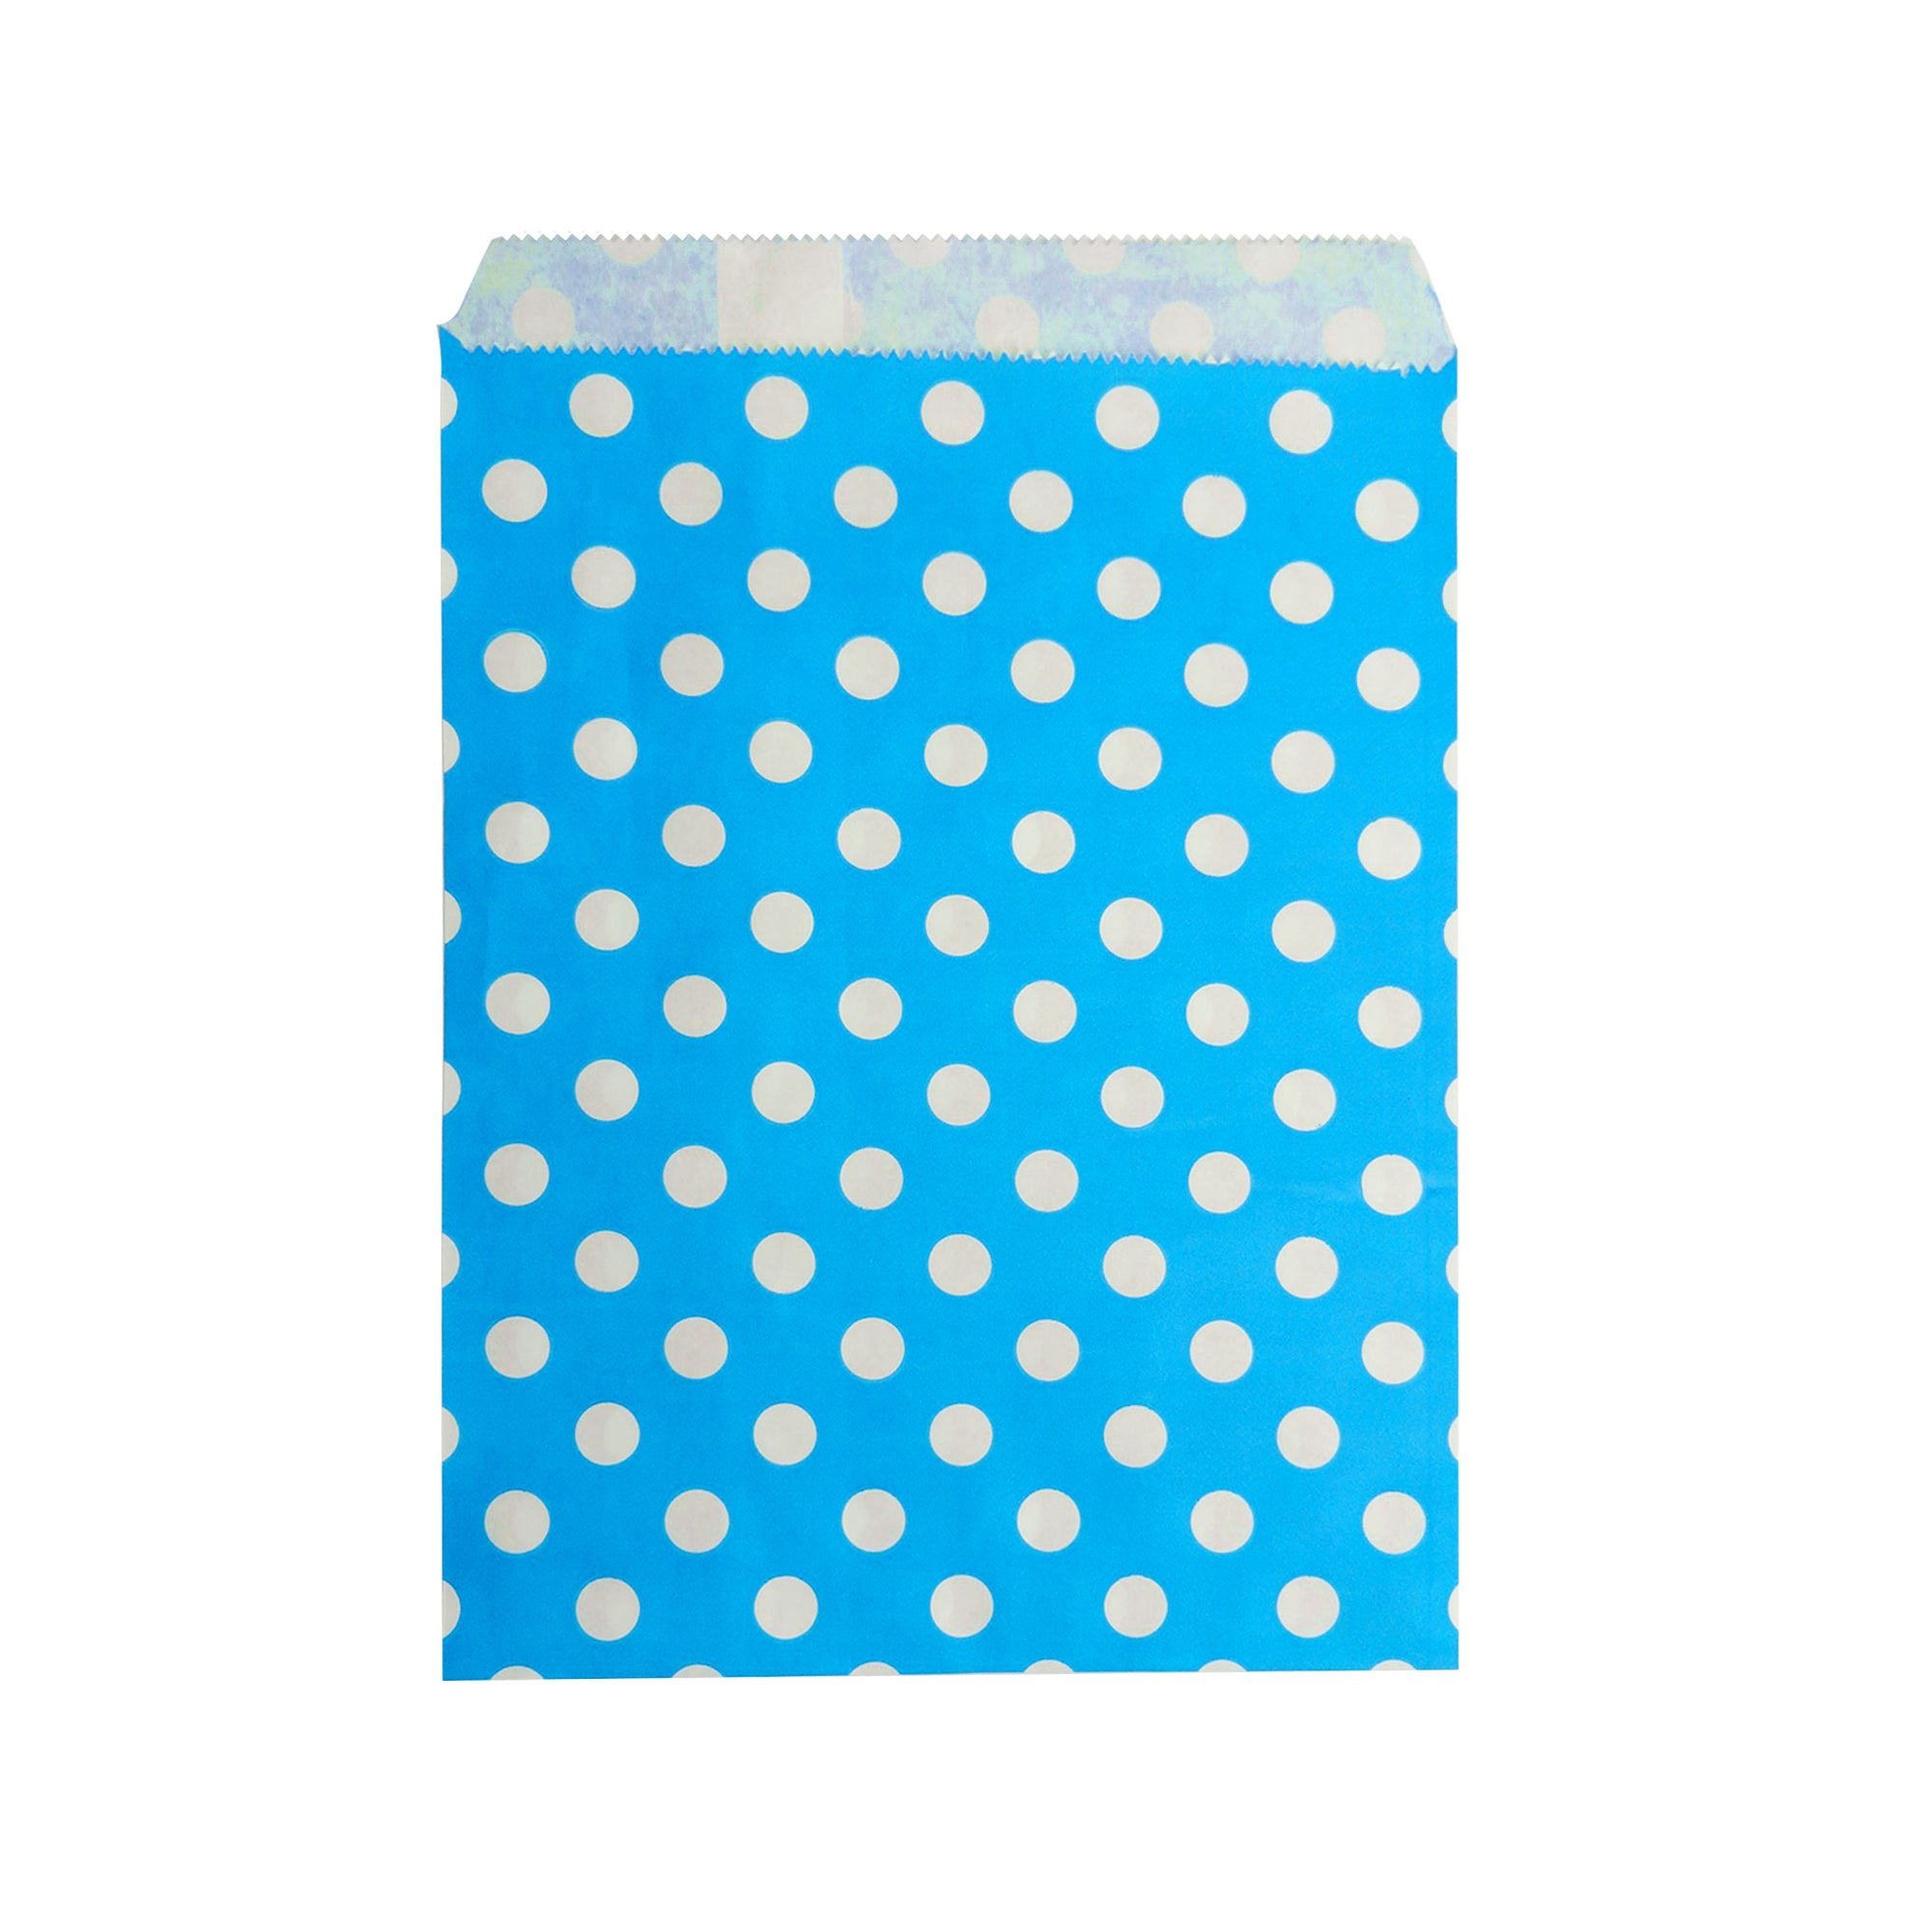 Big Blue Polka Paper Bag - 50 pcs